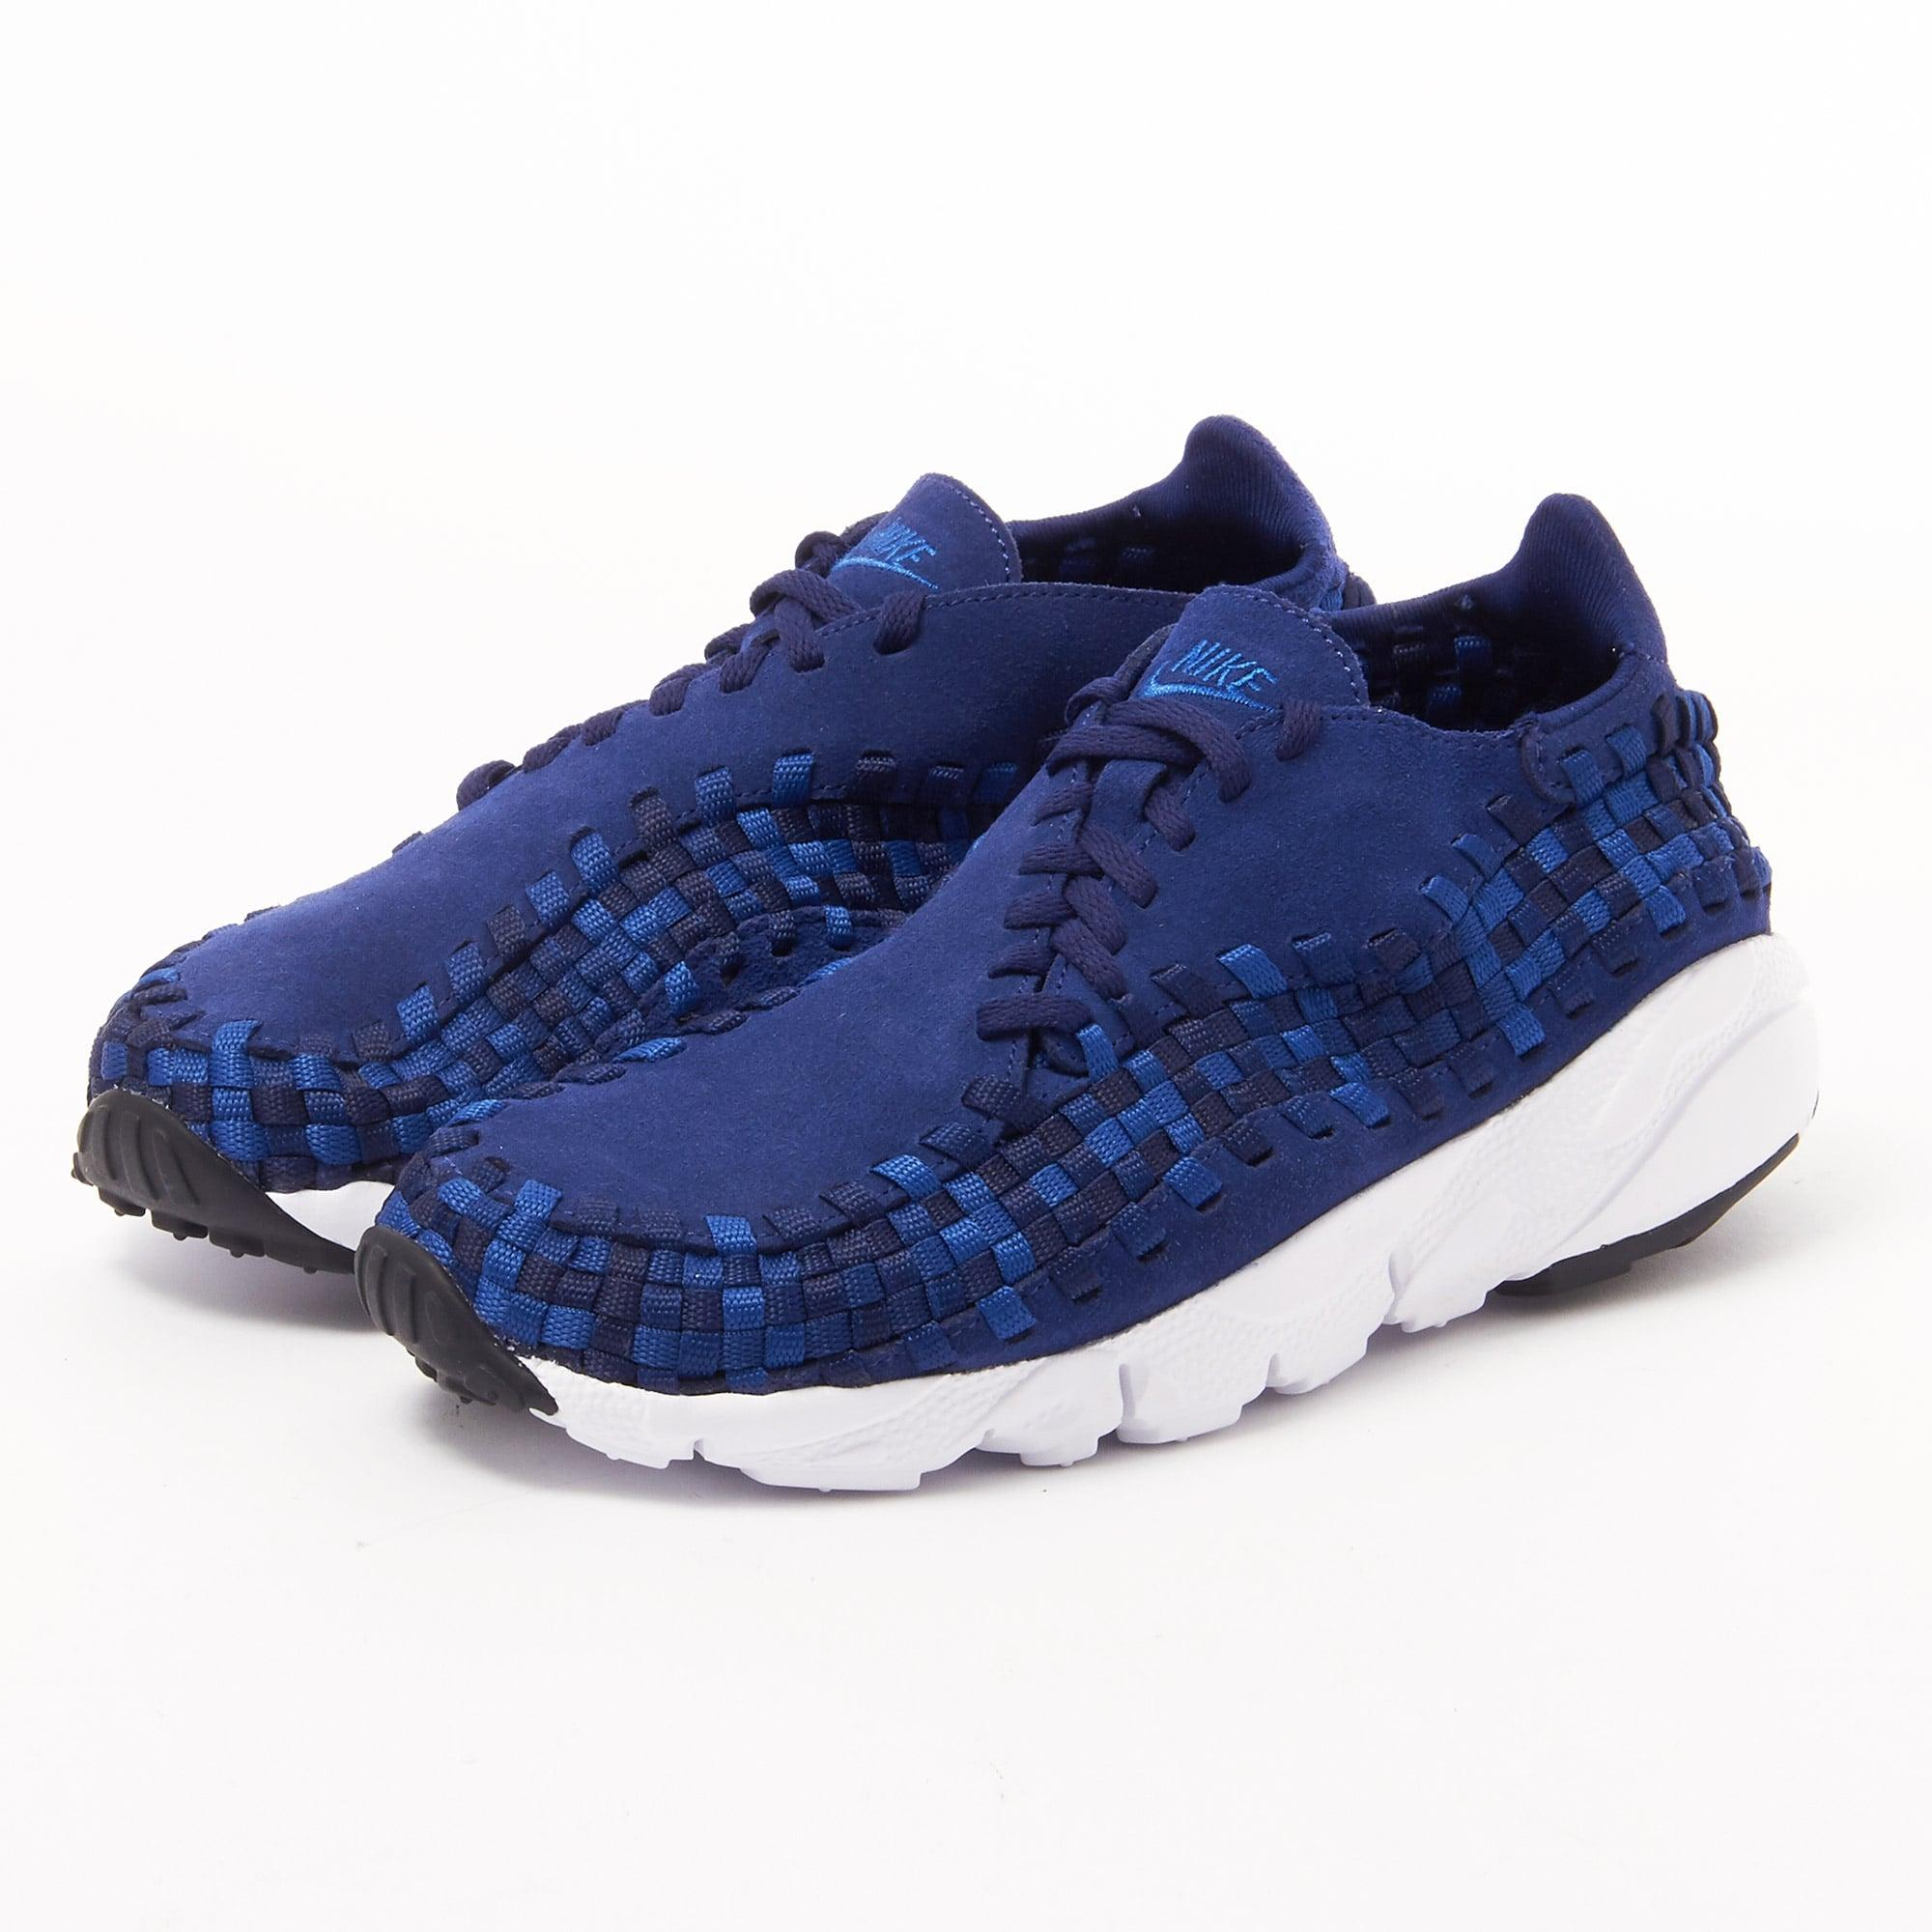 lyst nike air footscape woven binary blue 875797 400 in blue. Black Bedroom Furniture Sets. Home Design Ideas